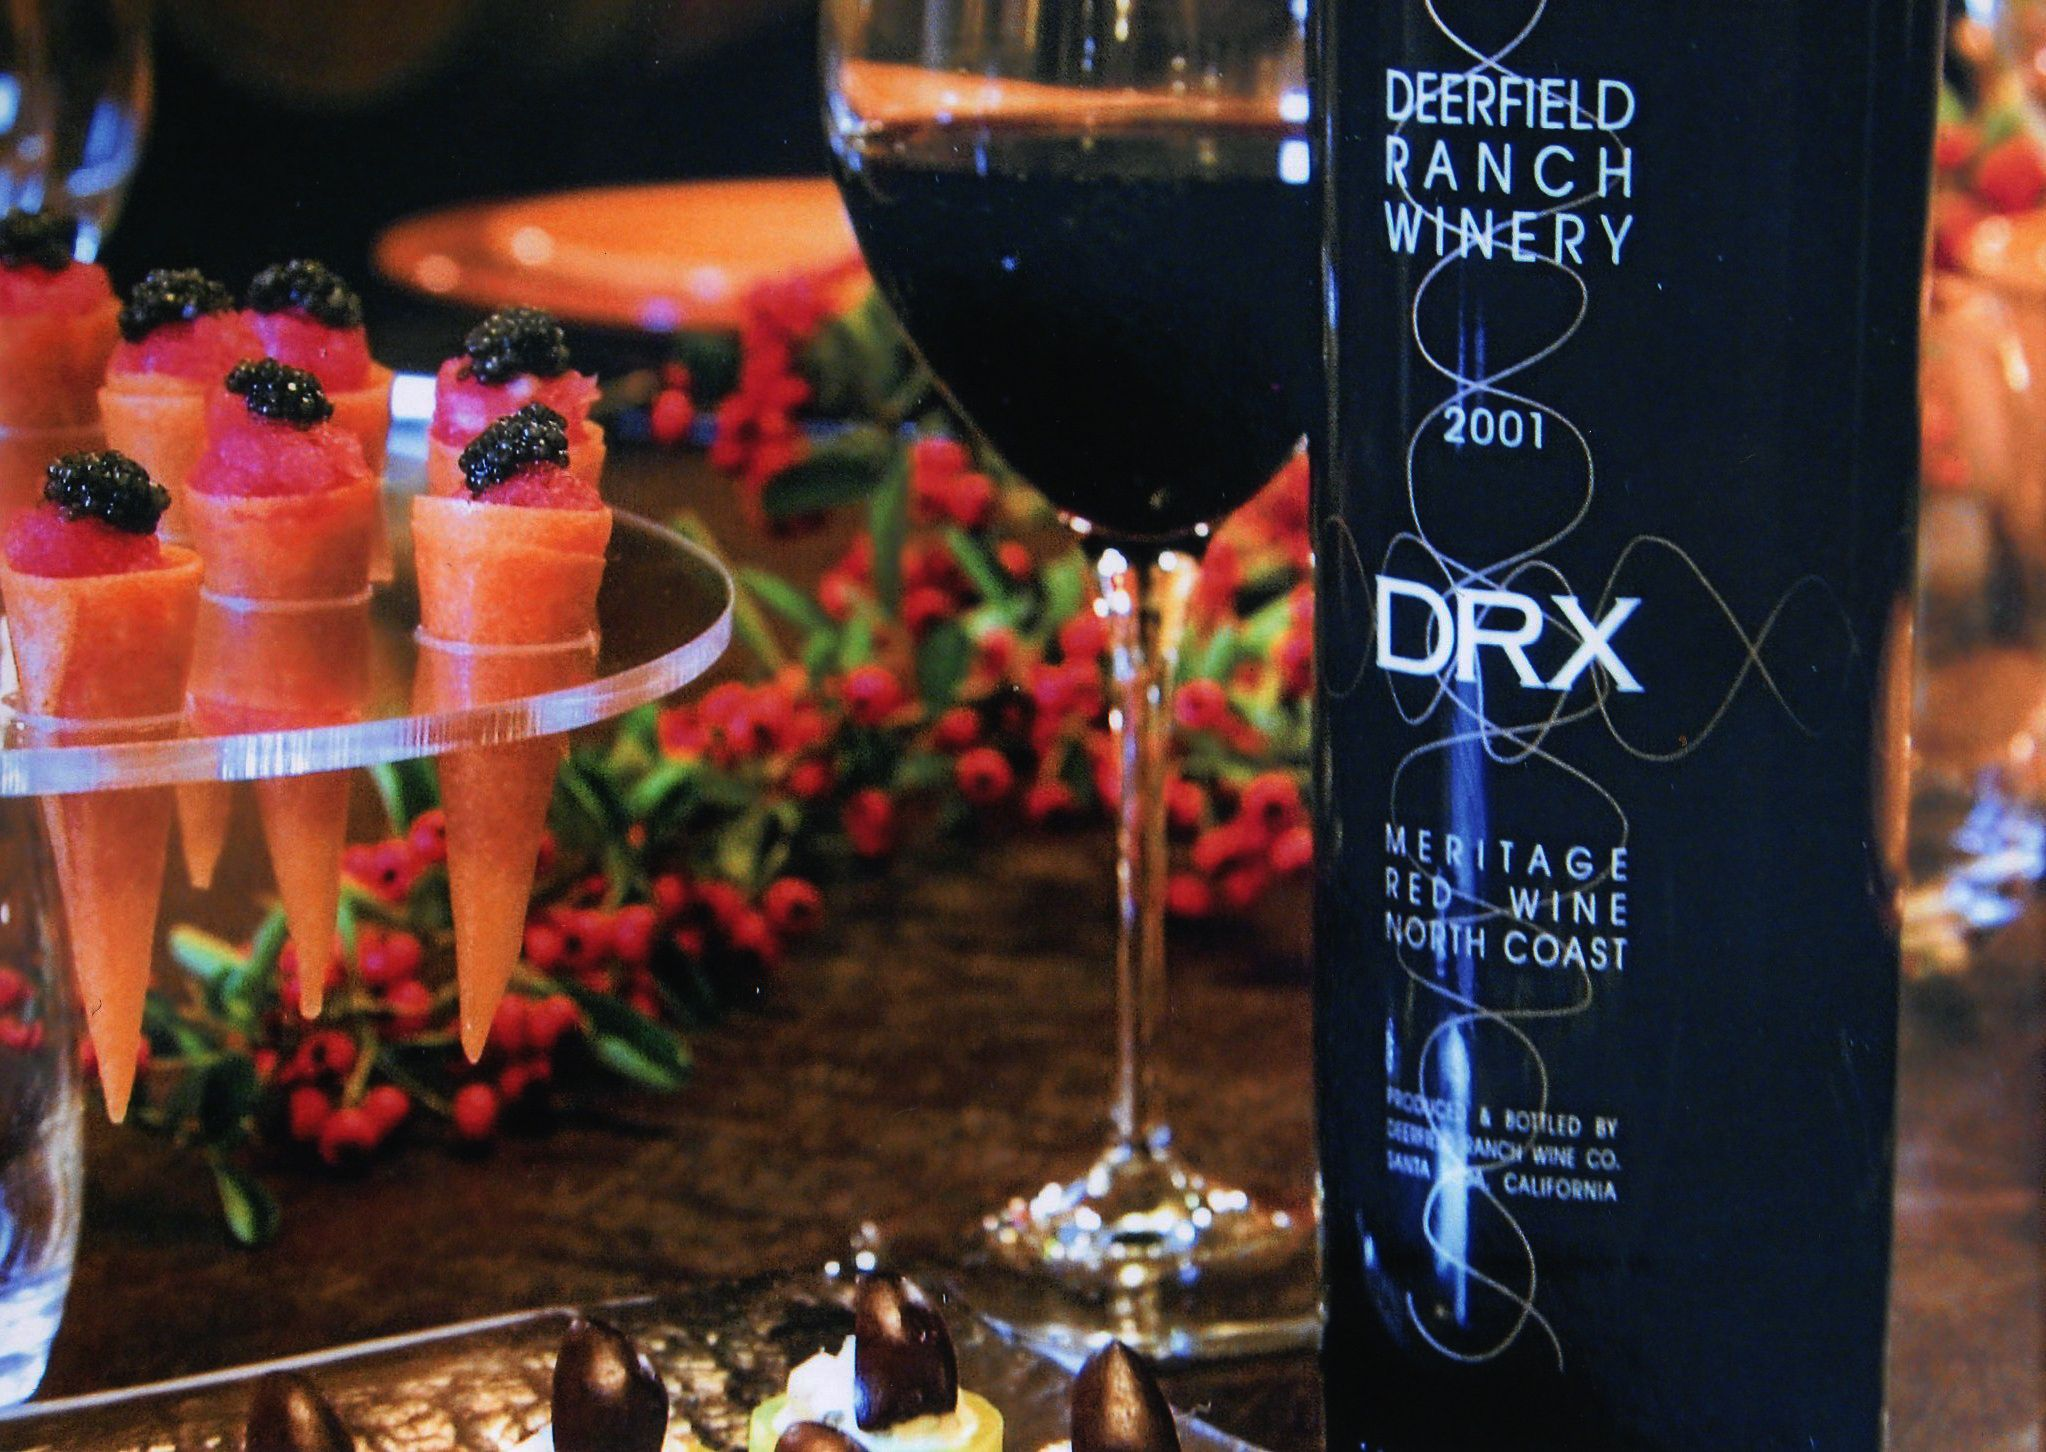 Meritsge Dxr Redwine Wine Winery Sonoma California Party Dinner Dinnerparty Dessert Fruit Pretty Table Fancy Delicious Thi Red Wine Fruit Red